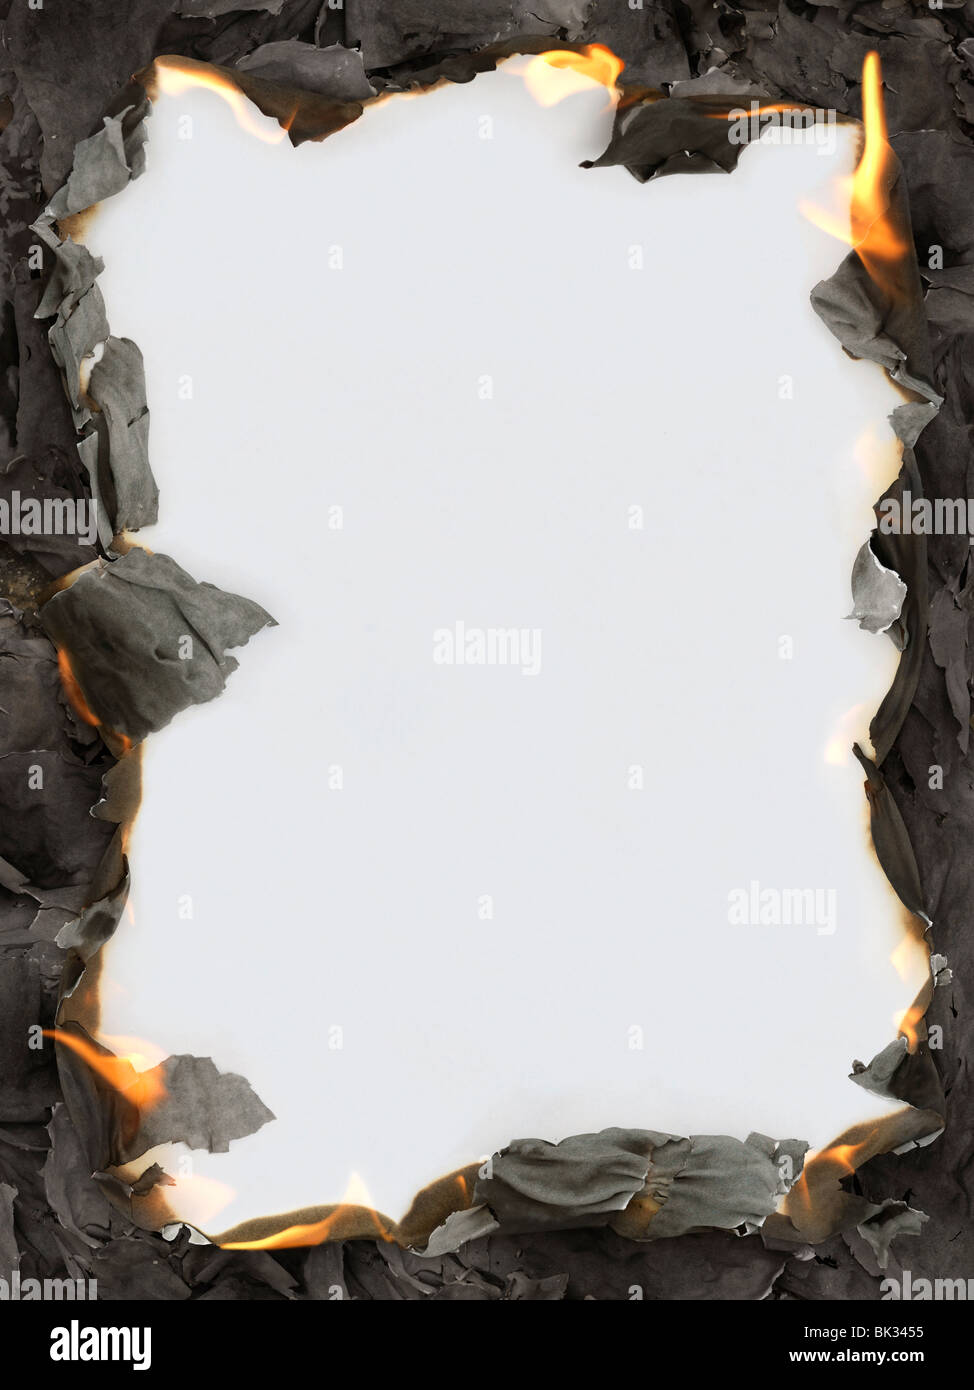 Burning paper ashes revealing blank white background making a frame ...